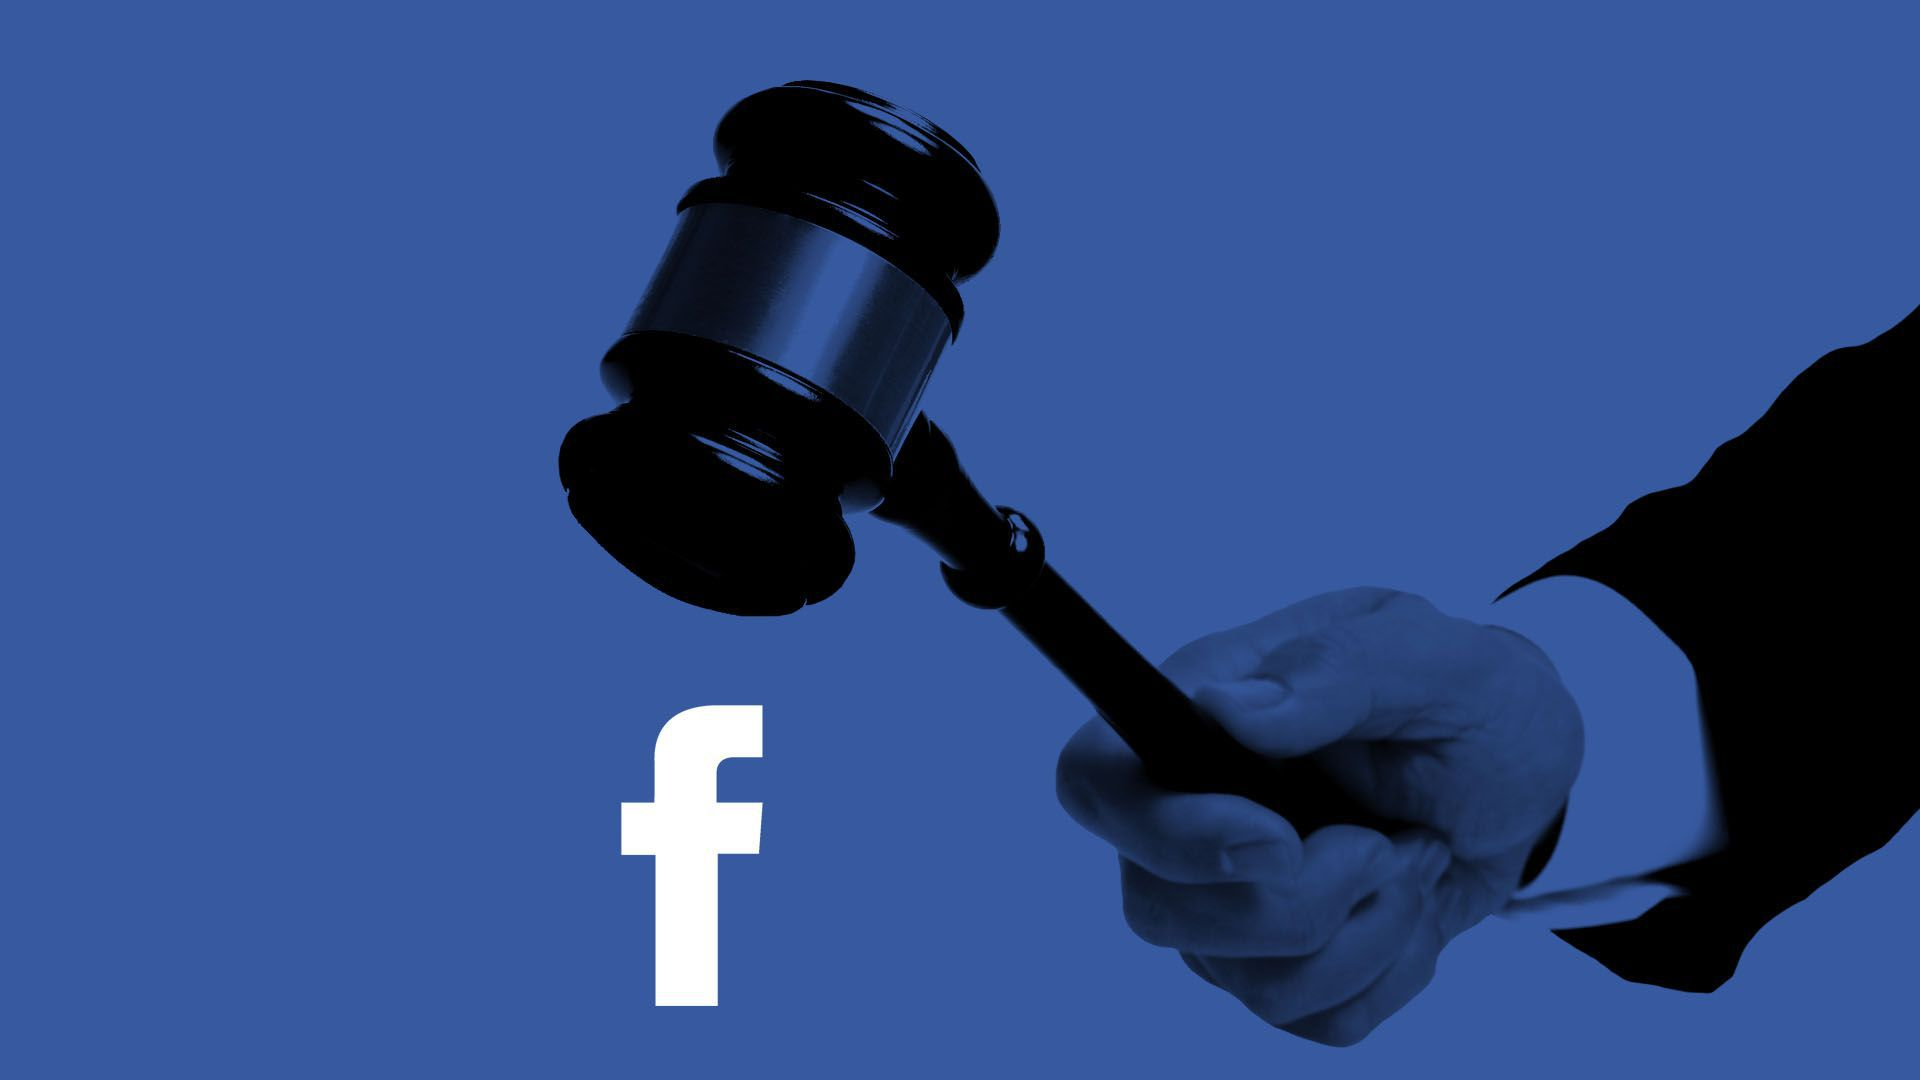 Illustration of a gavel landing on a Facebook logo